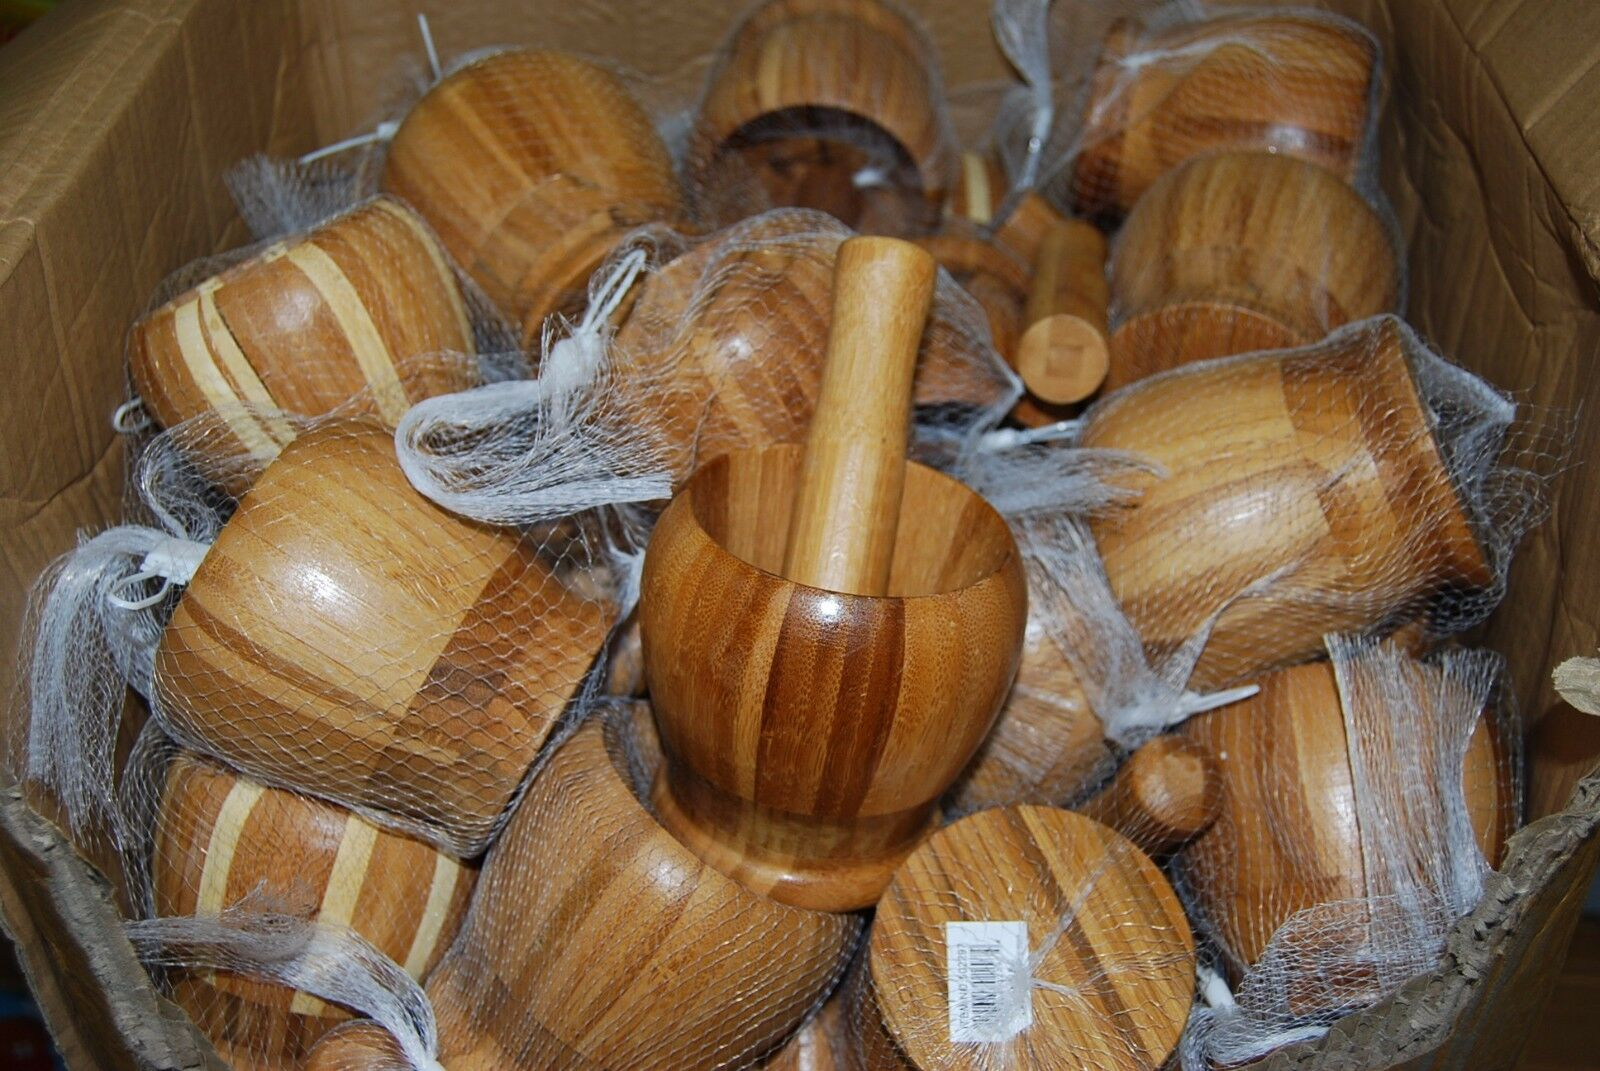 Lot Of 24pc Wooden Mortar and Pestle  Wholesale Free Shipping